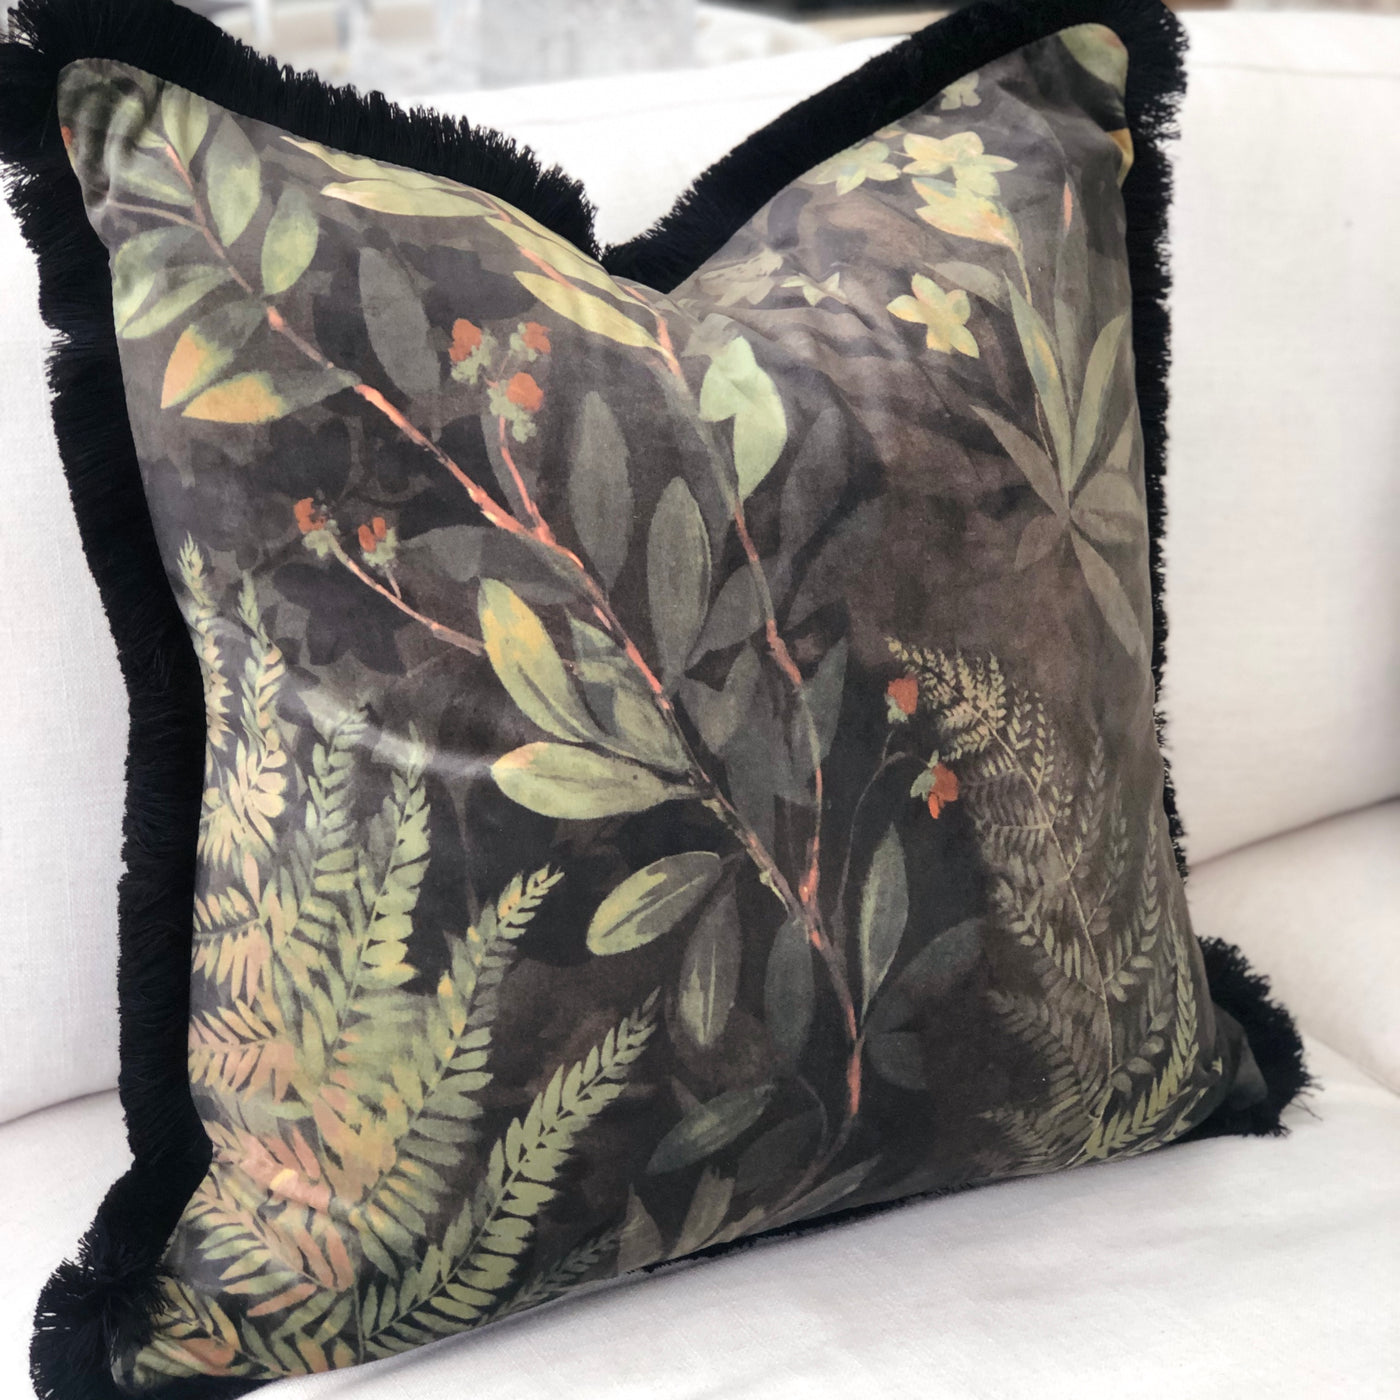 Jungle Cushion with Fringe 60x60